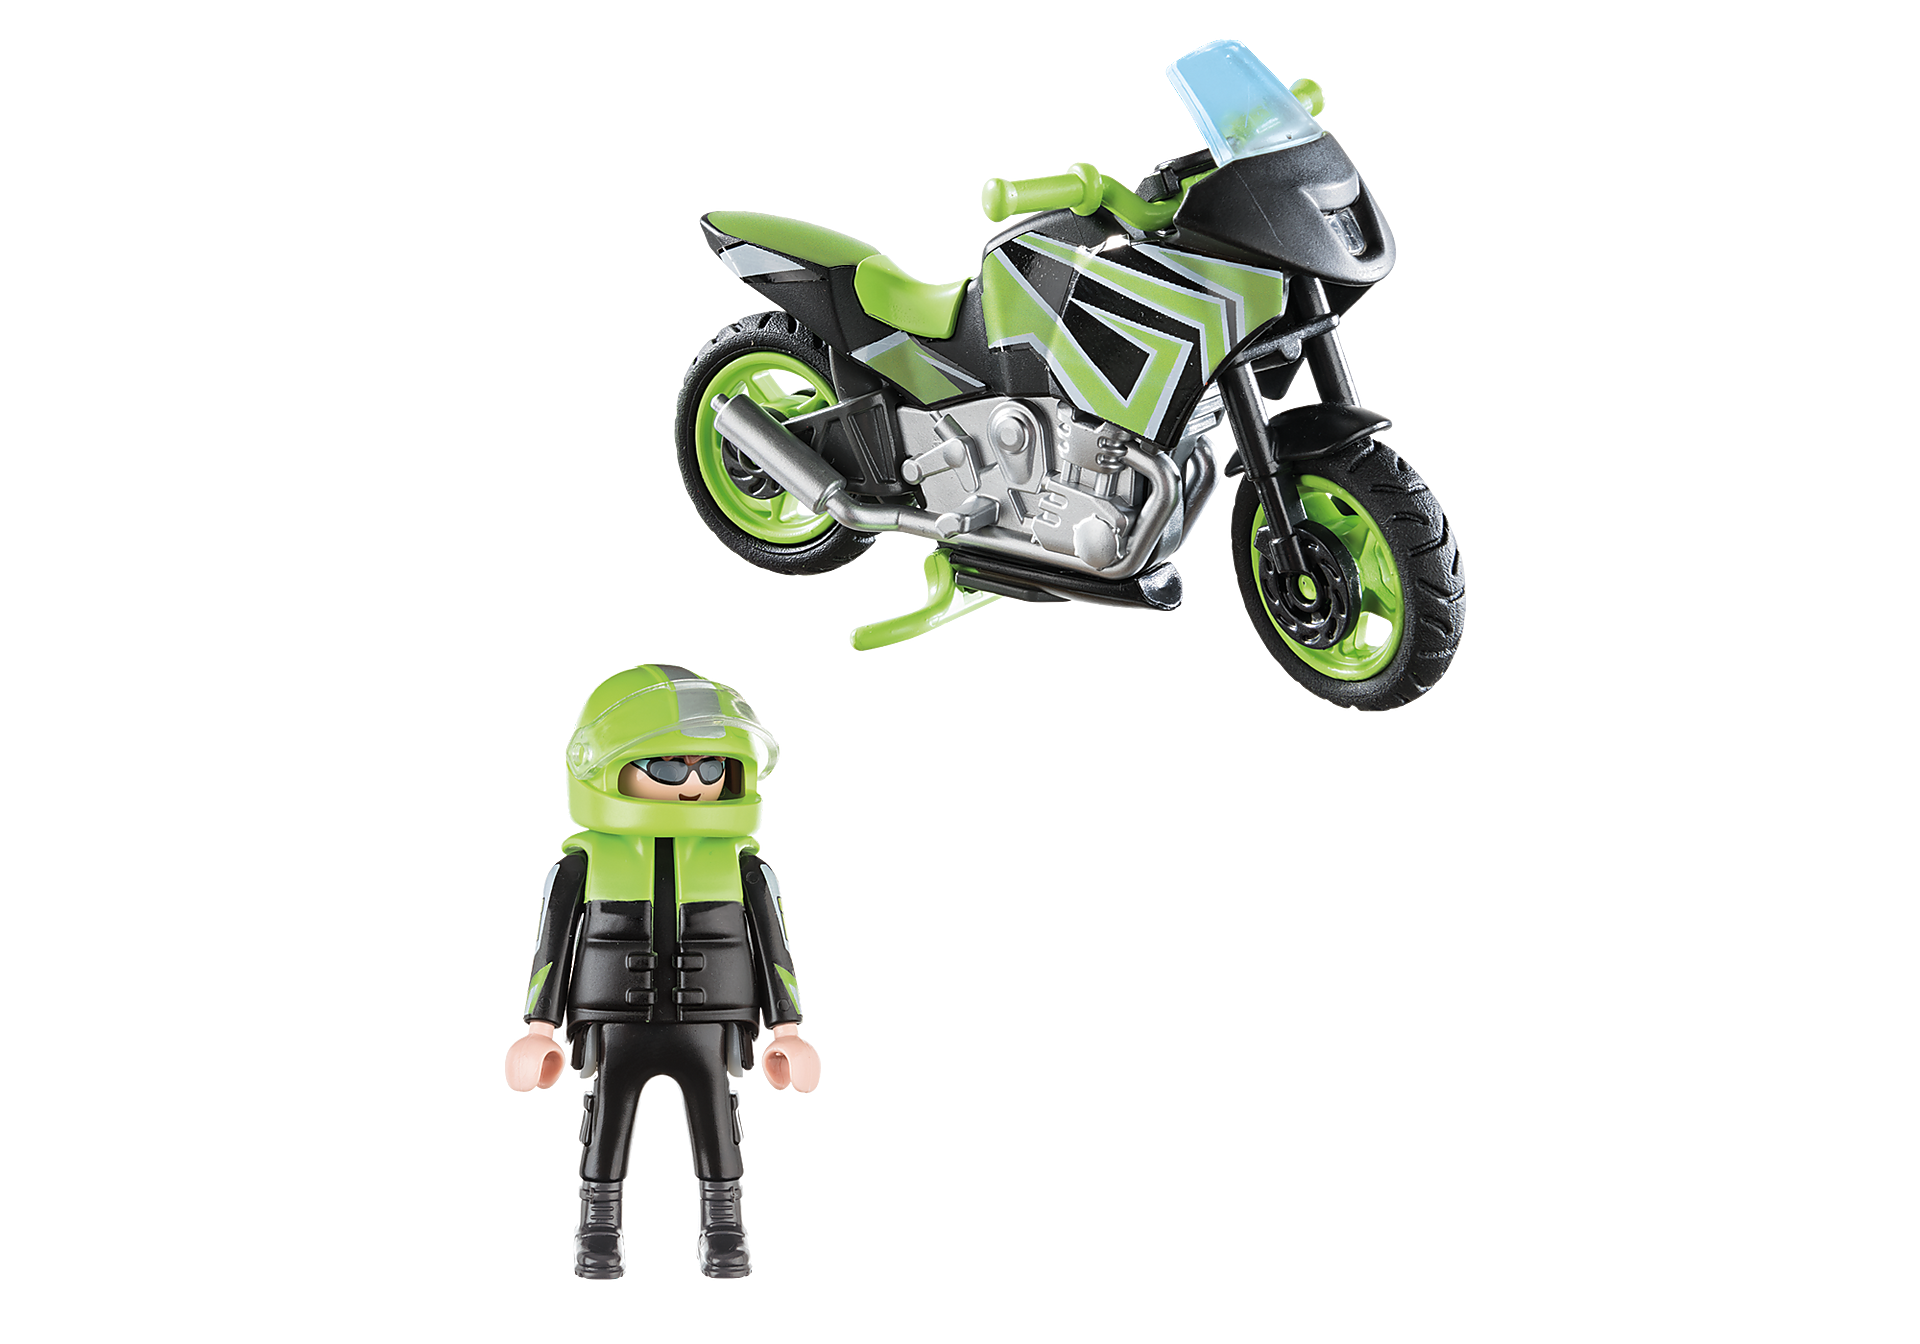 70204 Motorcycle with Rider zoom image3